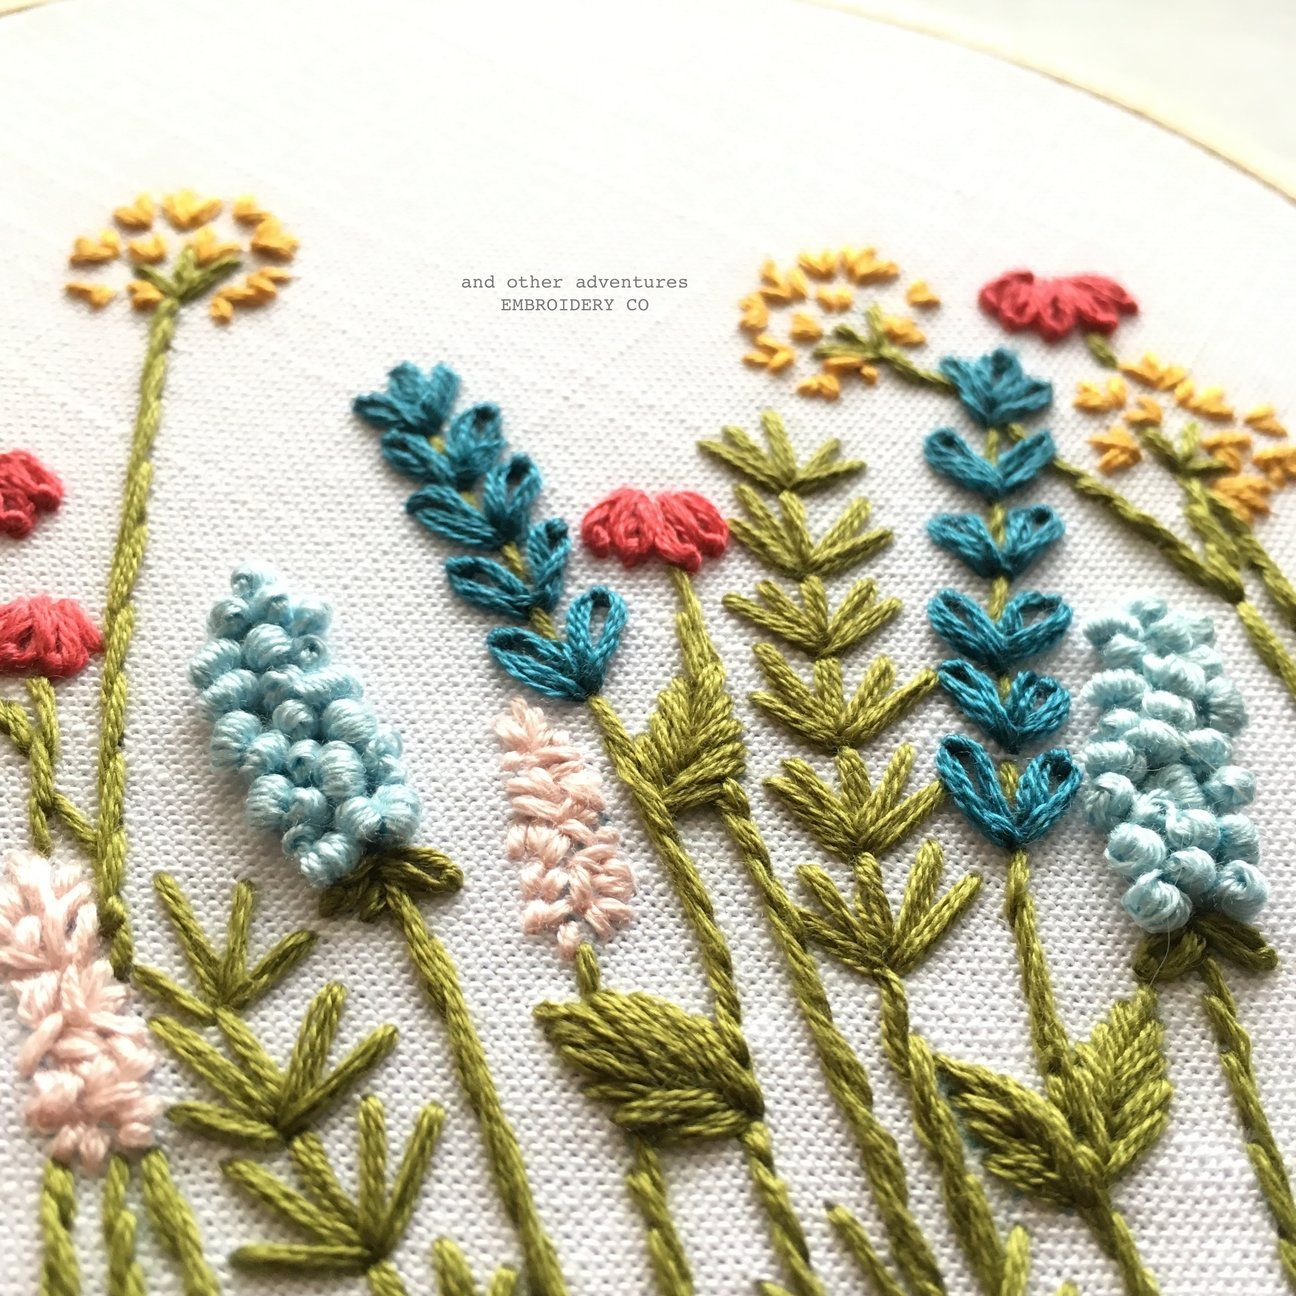 Beginner Hand Embroidery Pattern – Bright Summer Meadow